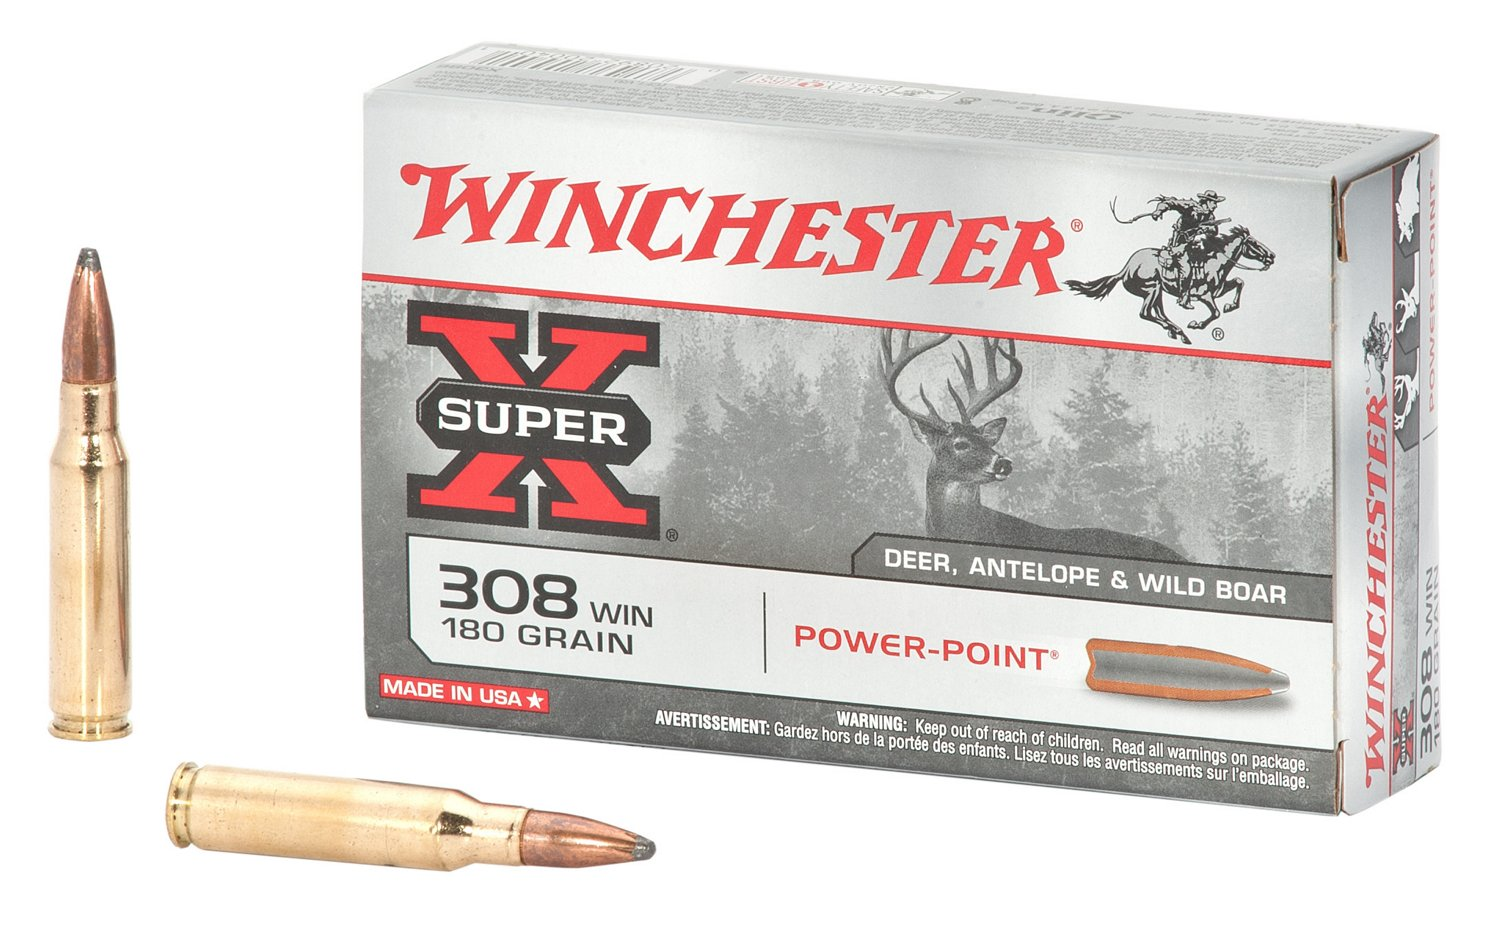 Winchester Super-X 308 Caliber 180-Grain Power-Point Ammunition